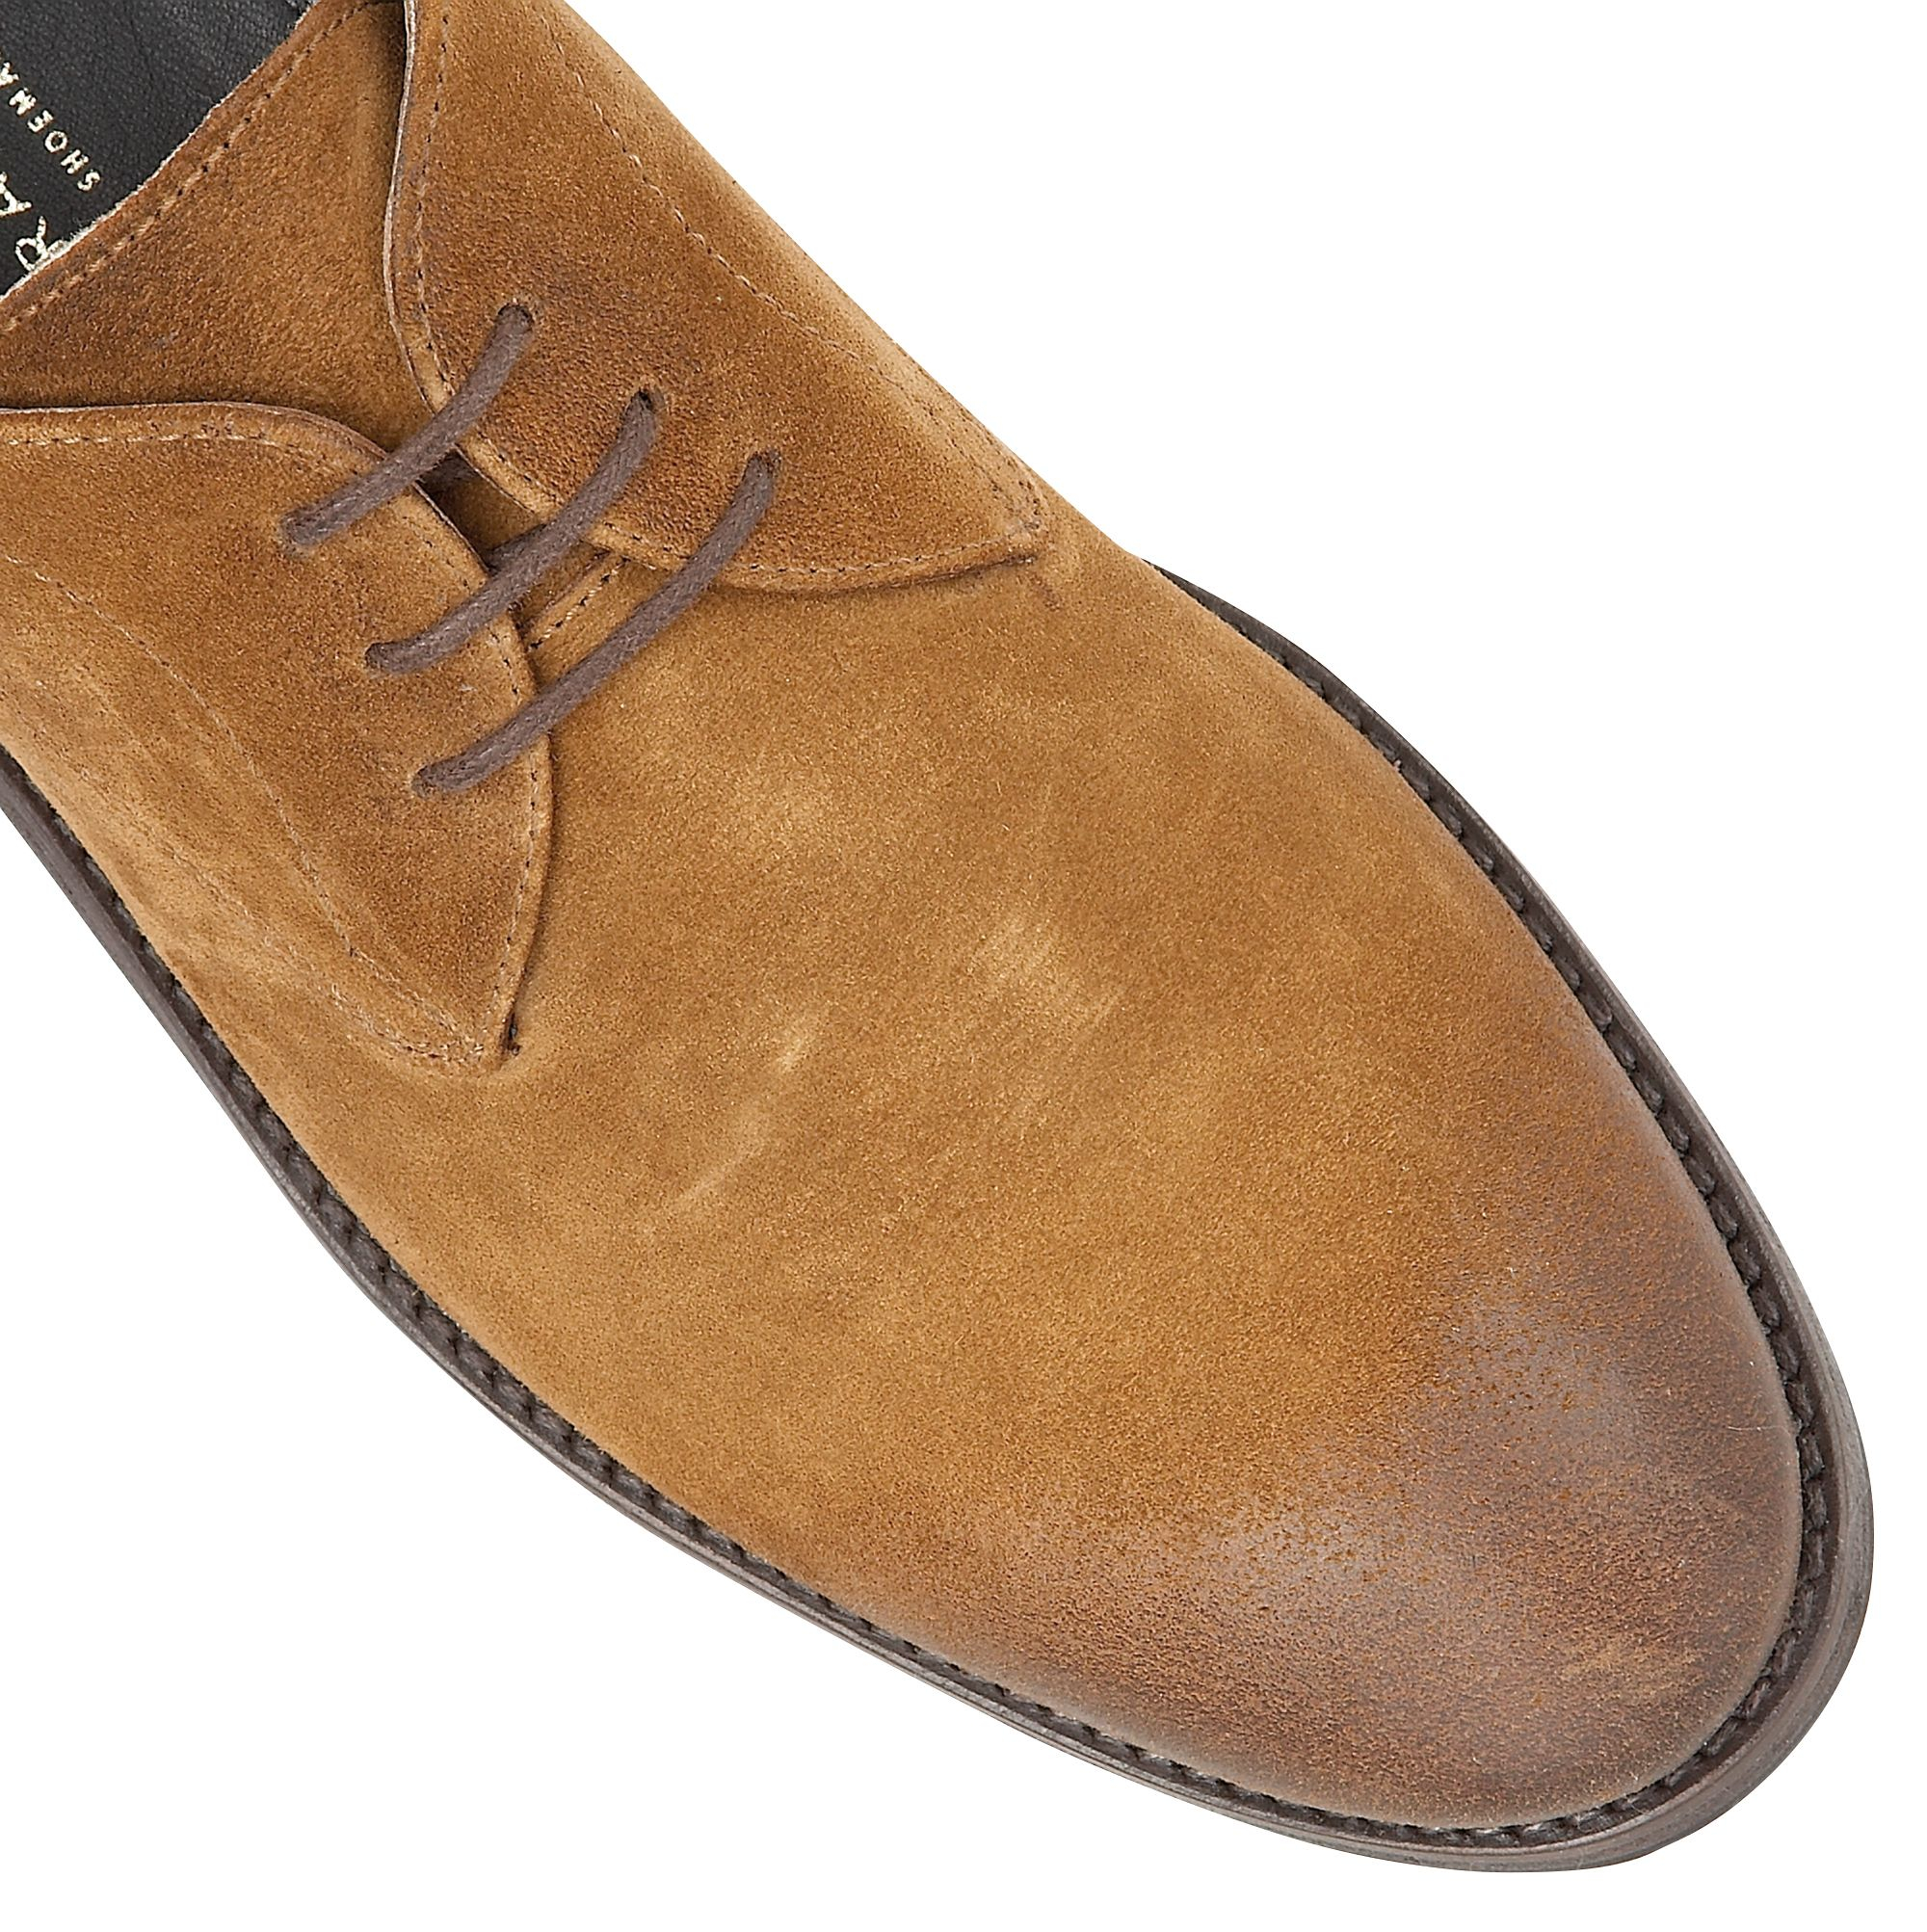 Frank Wright Leather Stringer Lace-ups in Tan (Brown) for Men